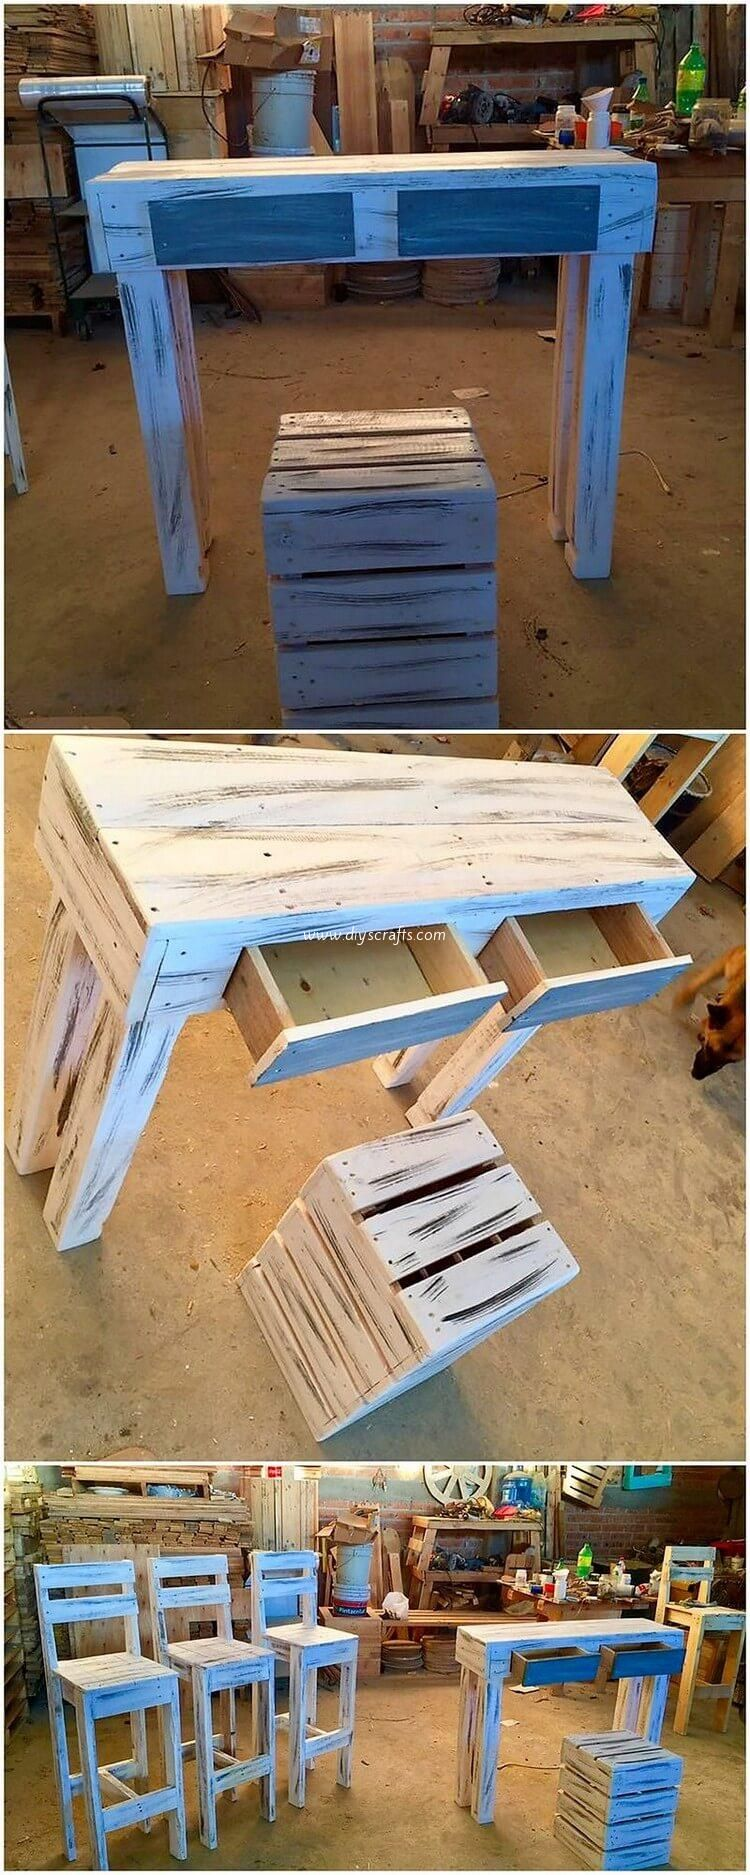 Fresh Ideas for Old Wood Pallets Recycling #oldpalletsforcrafting